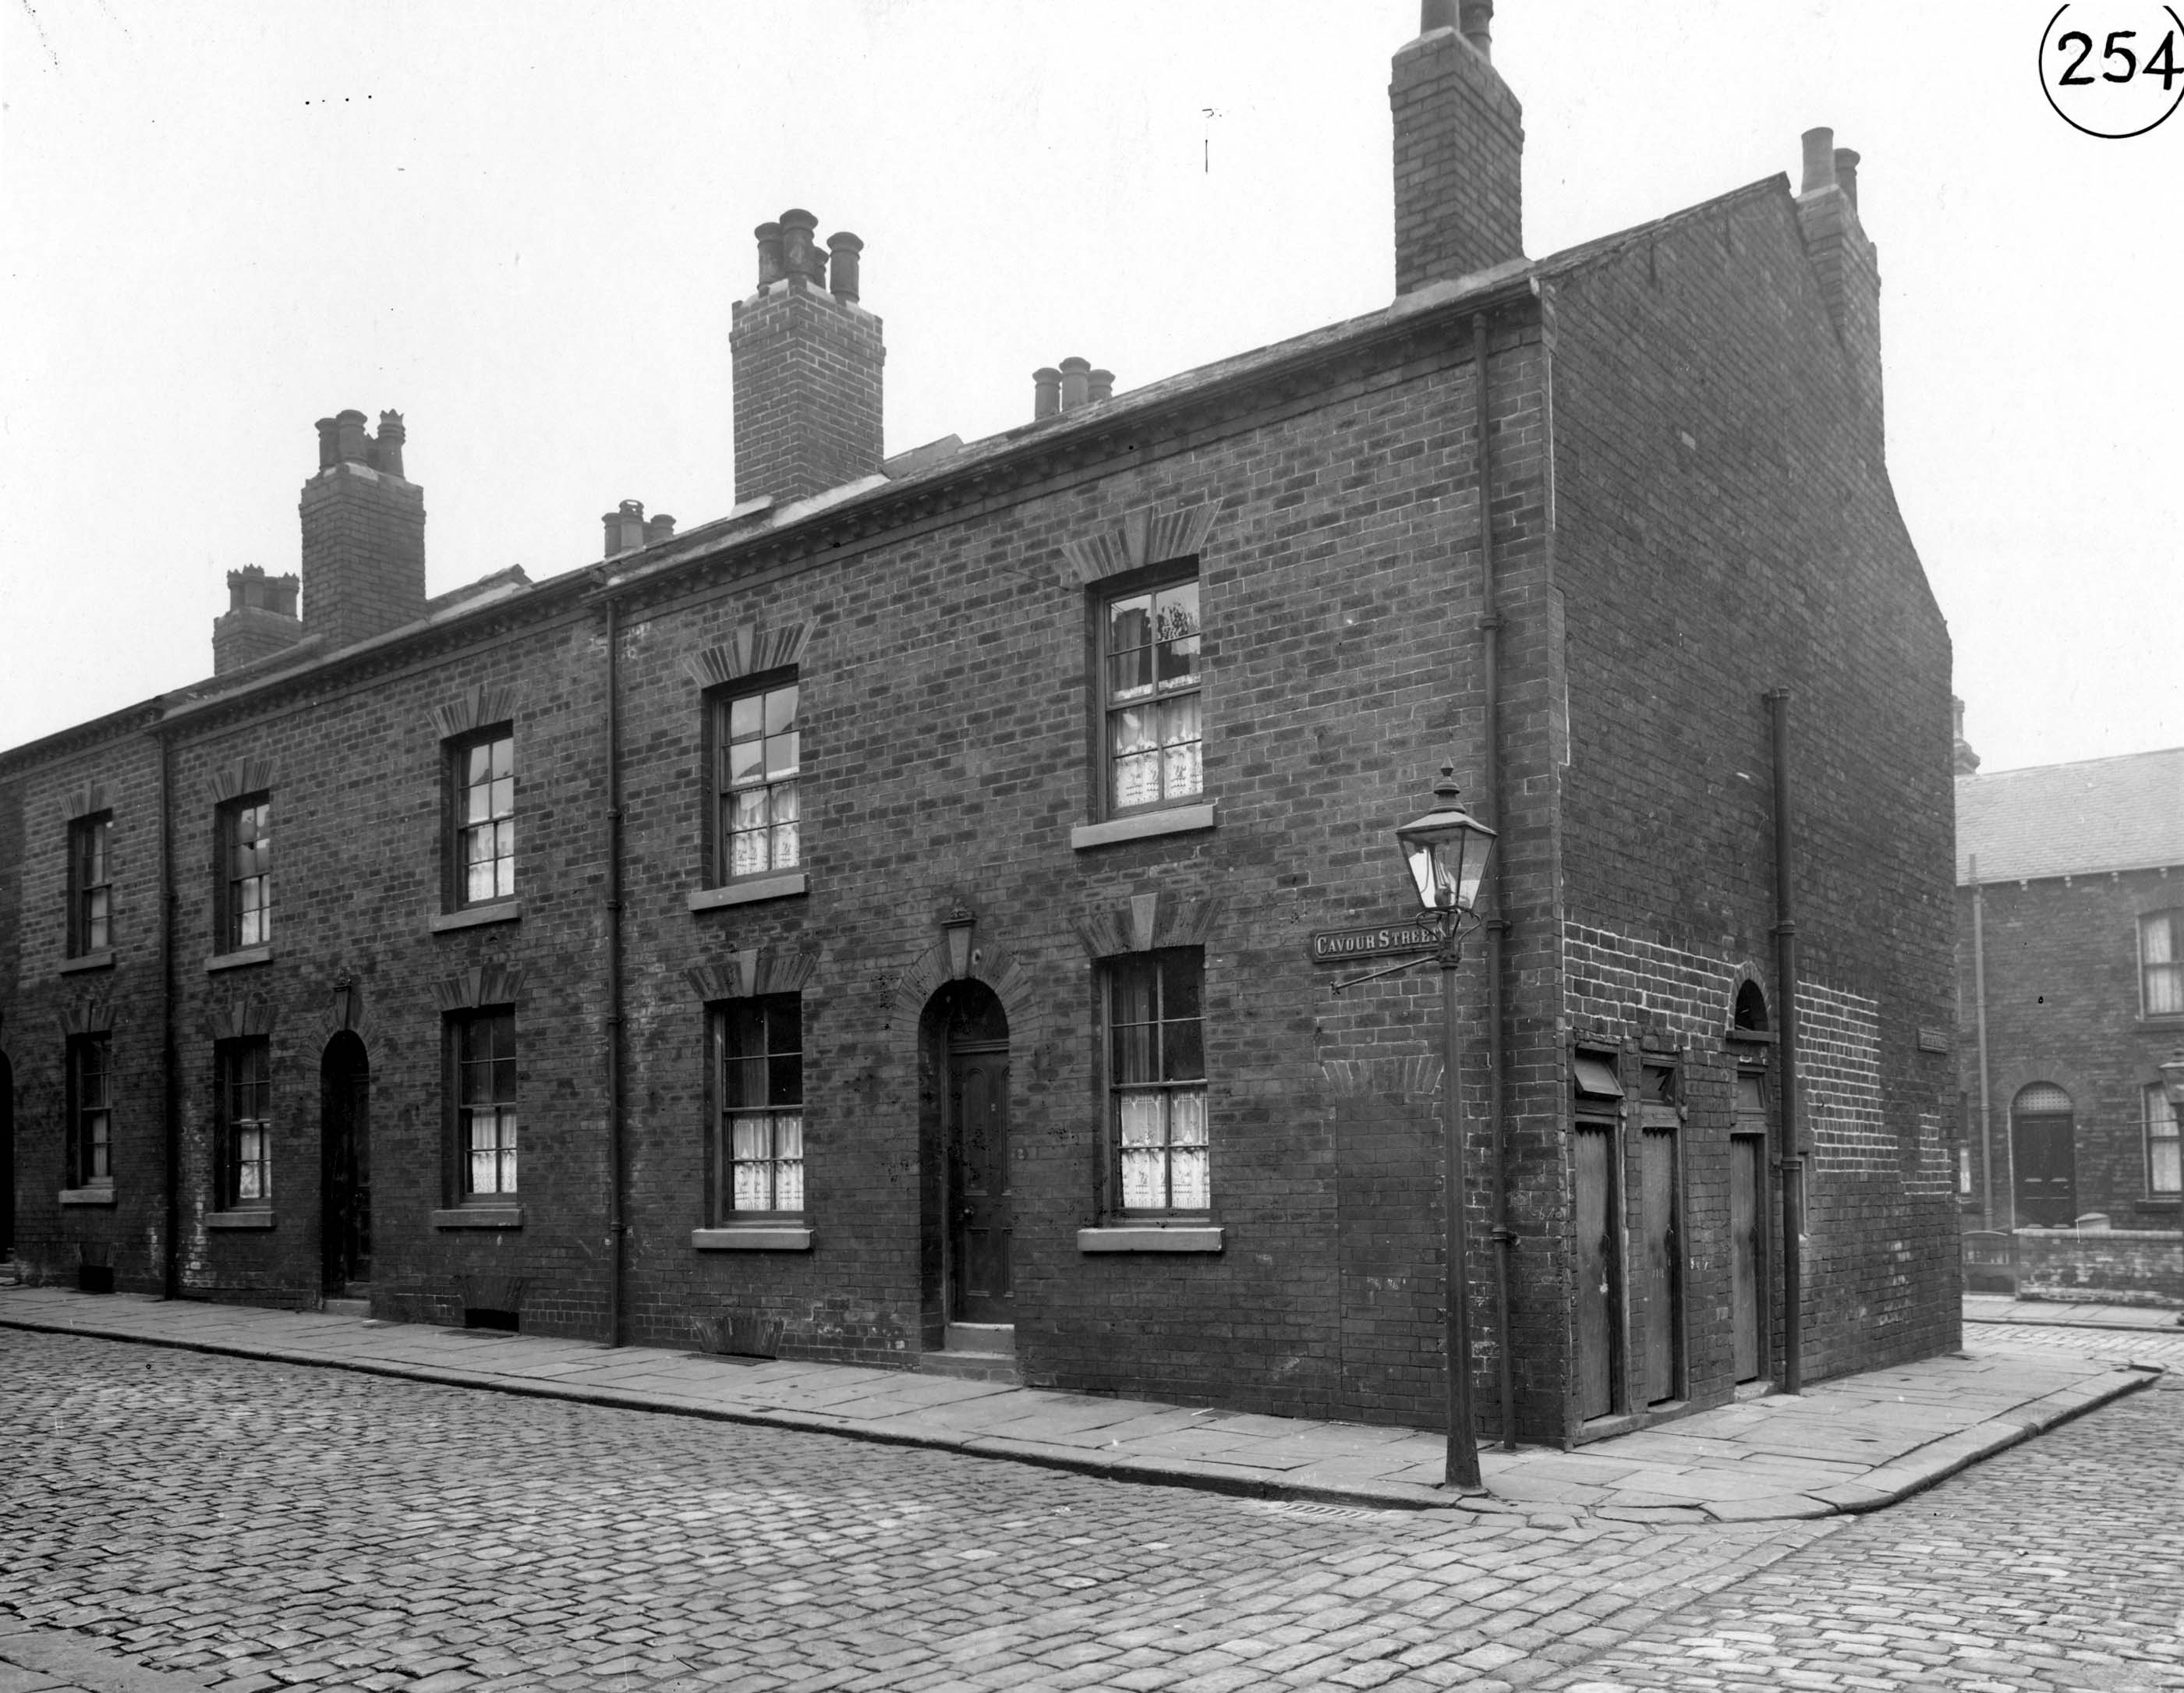 Back-to-Back Terraced houses in Leeds